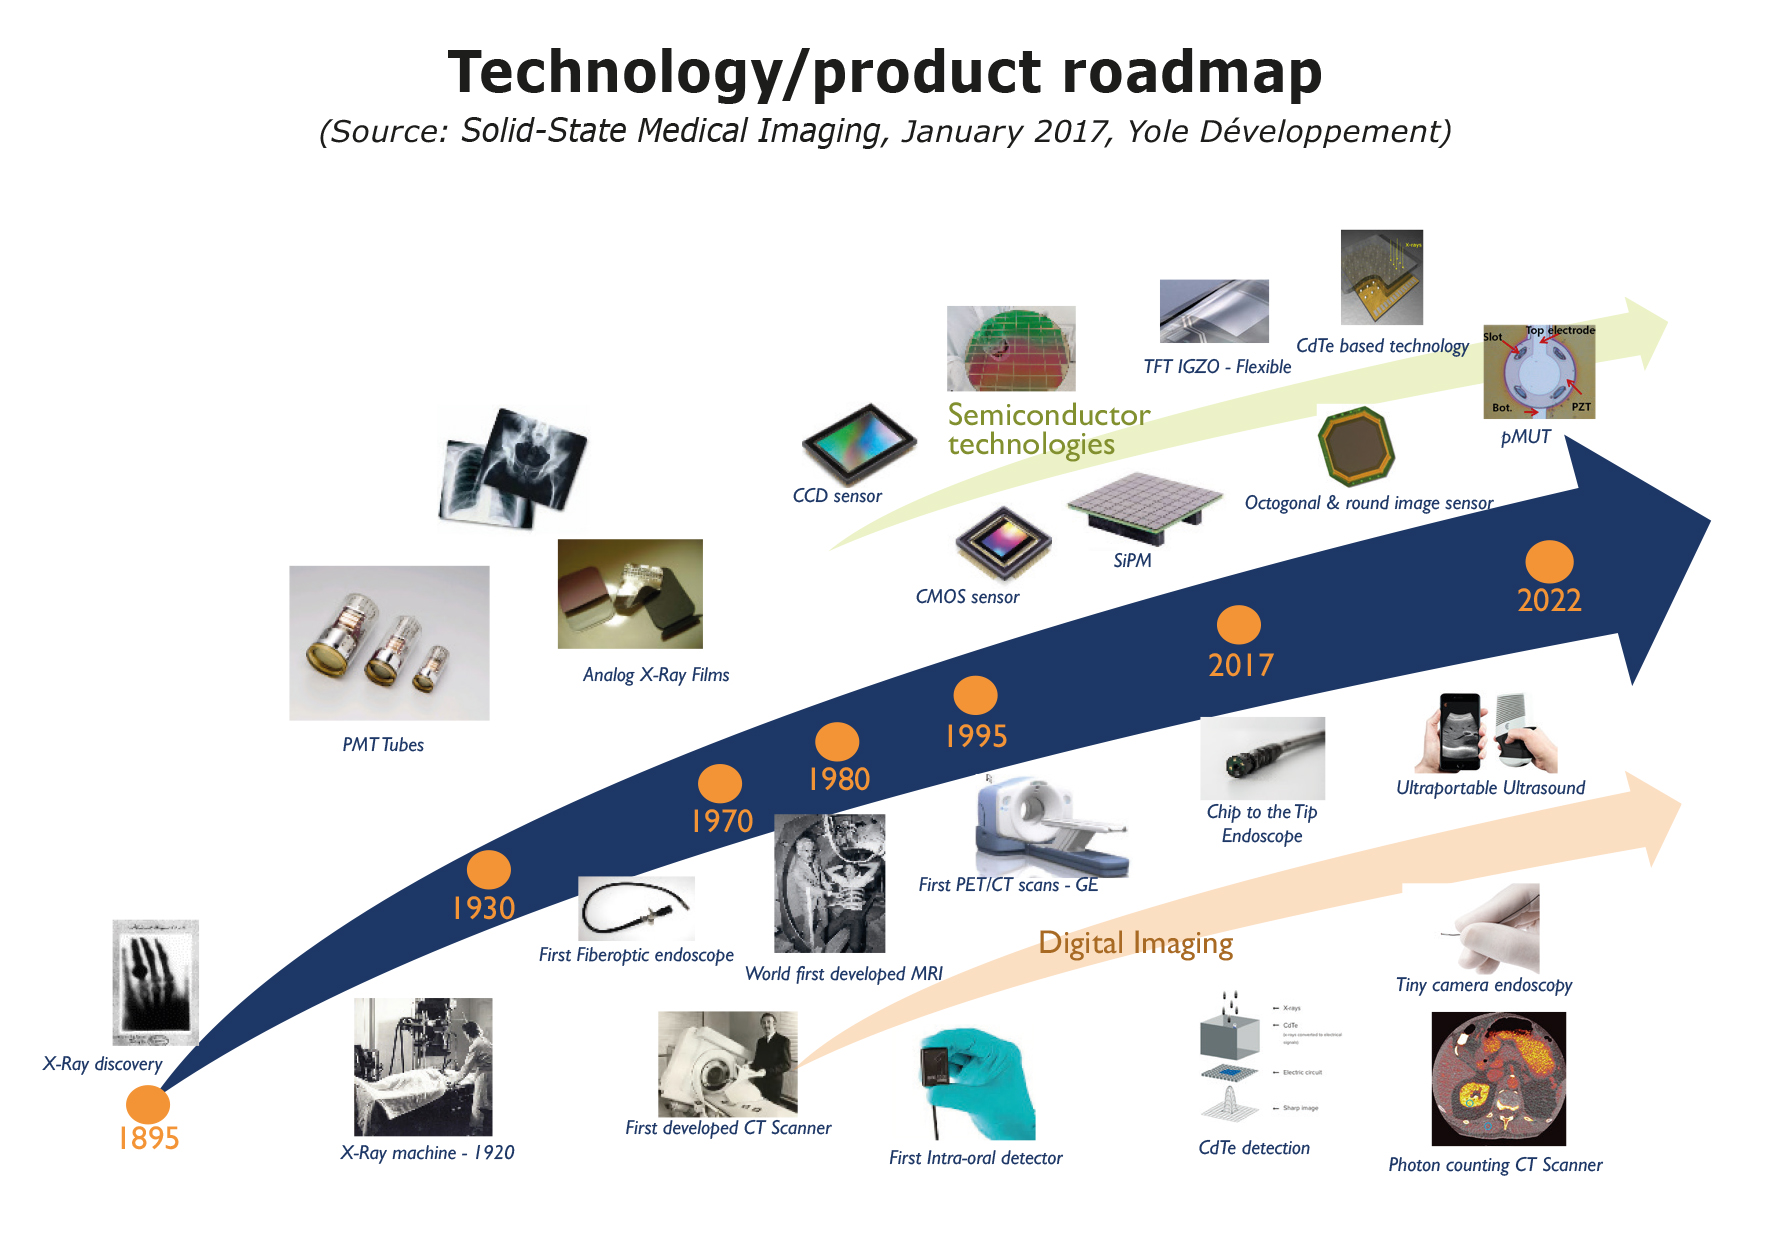 Technology/product roadmap Yole Developpement